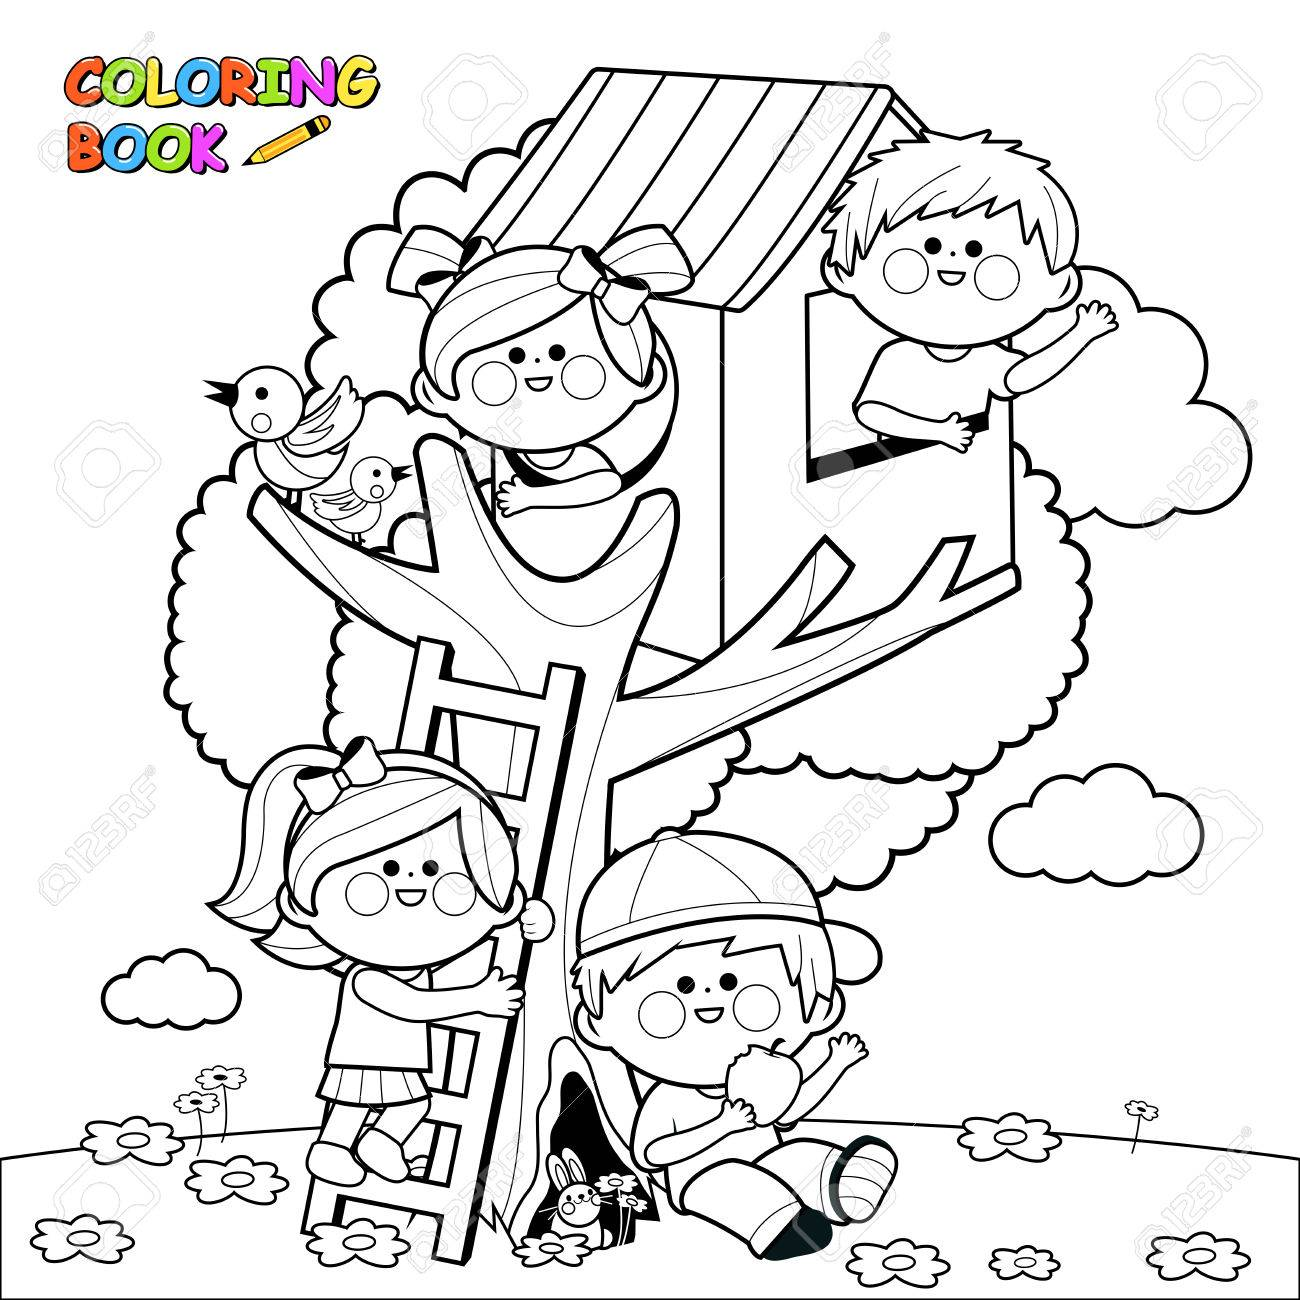 Children playing in a tree house. Black and white coloring book page - 68502313